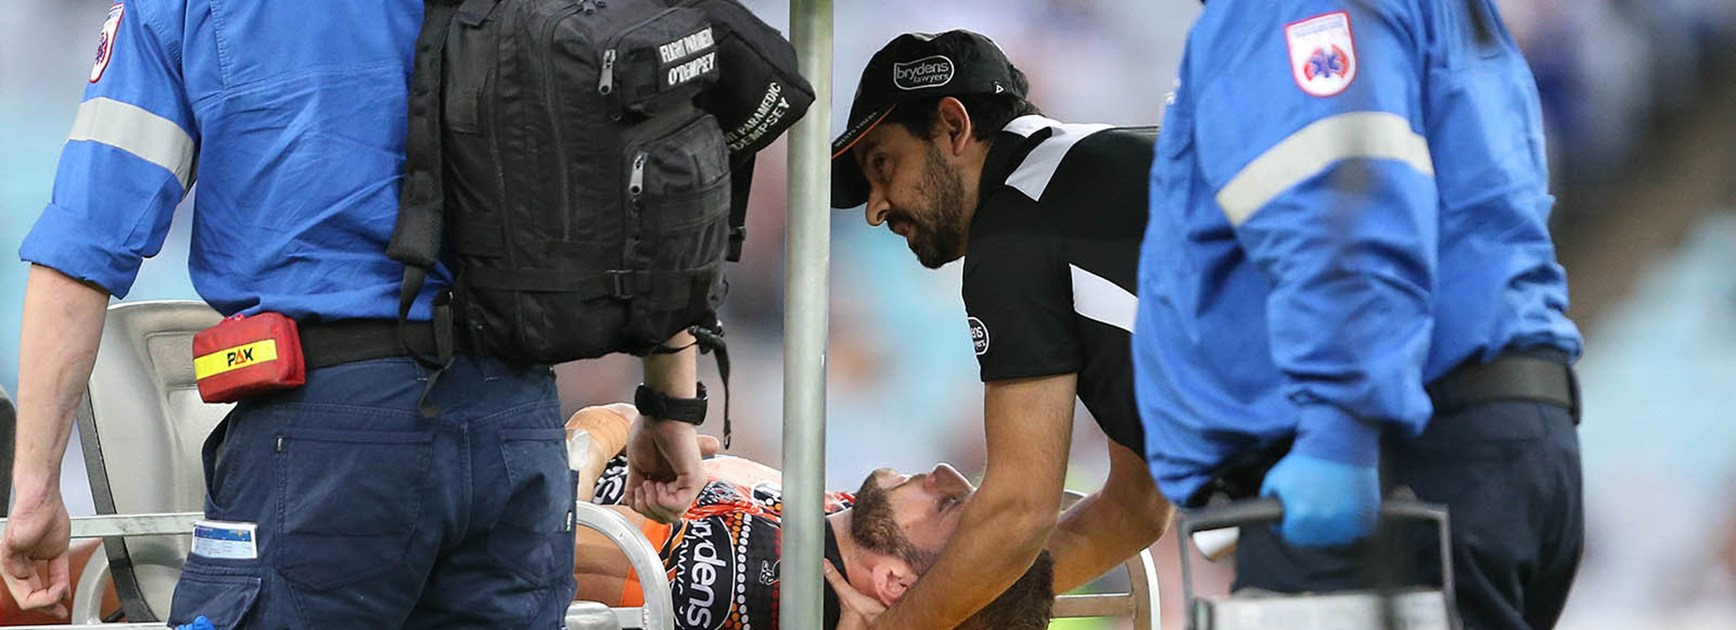 Robbie Farah was injured during his side's clash with the Bulldogs at ANZ Stadium.